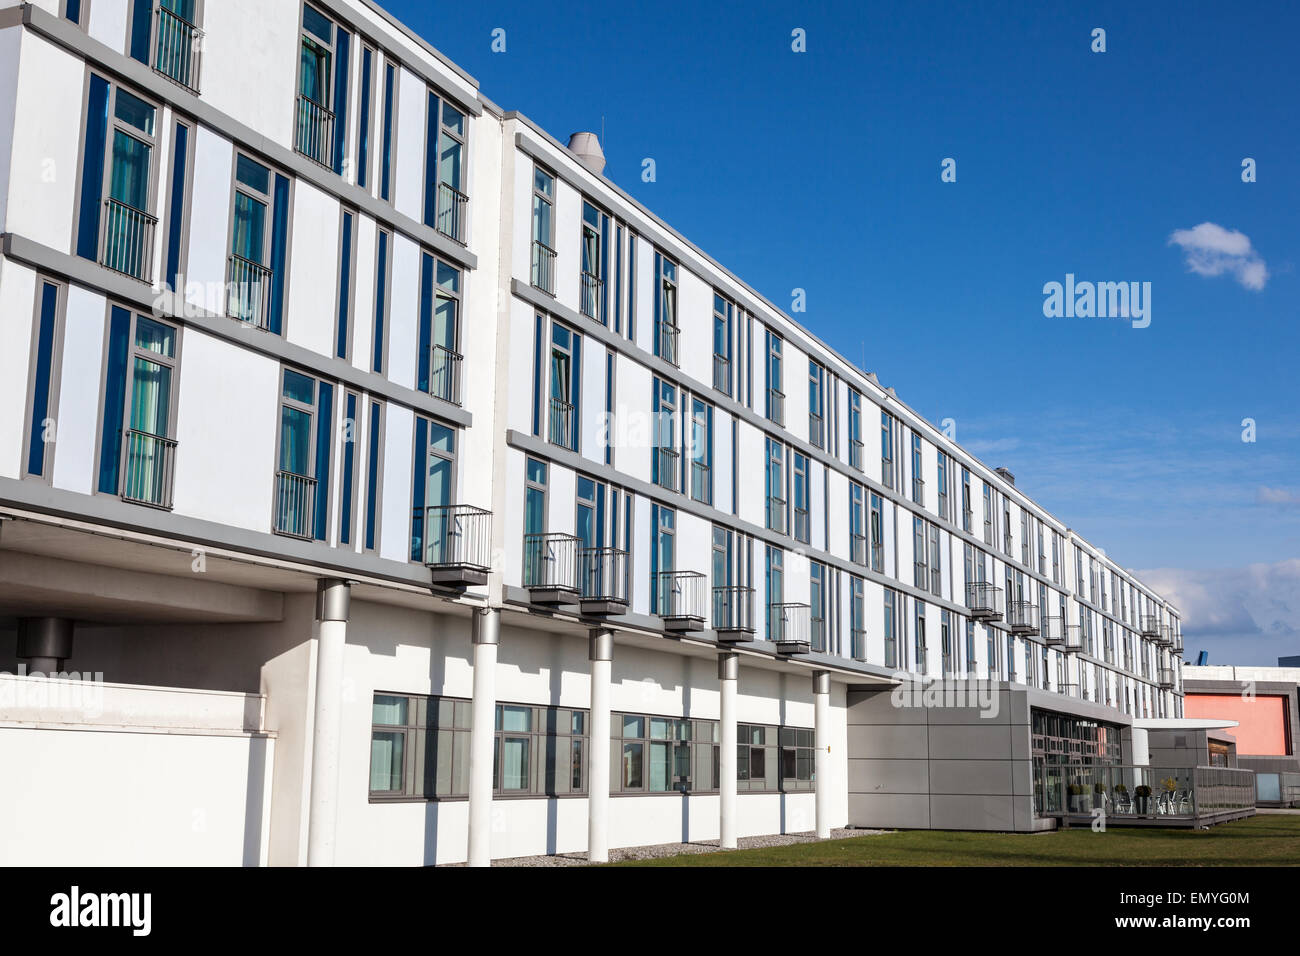 Stock Photo - White building with modern urban architecture